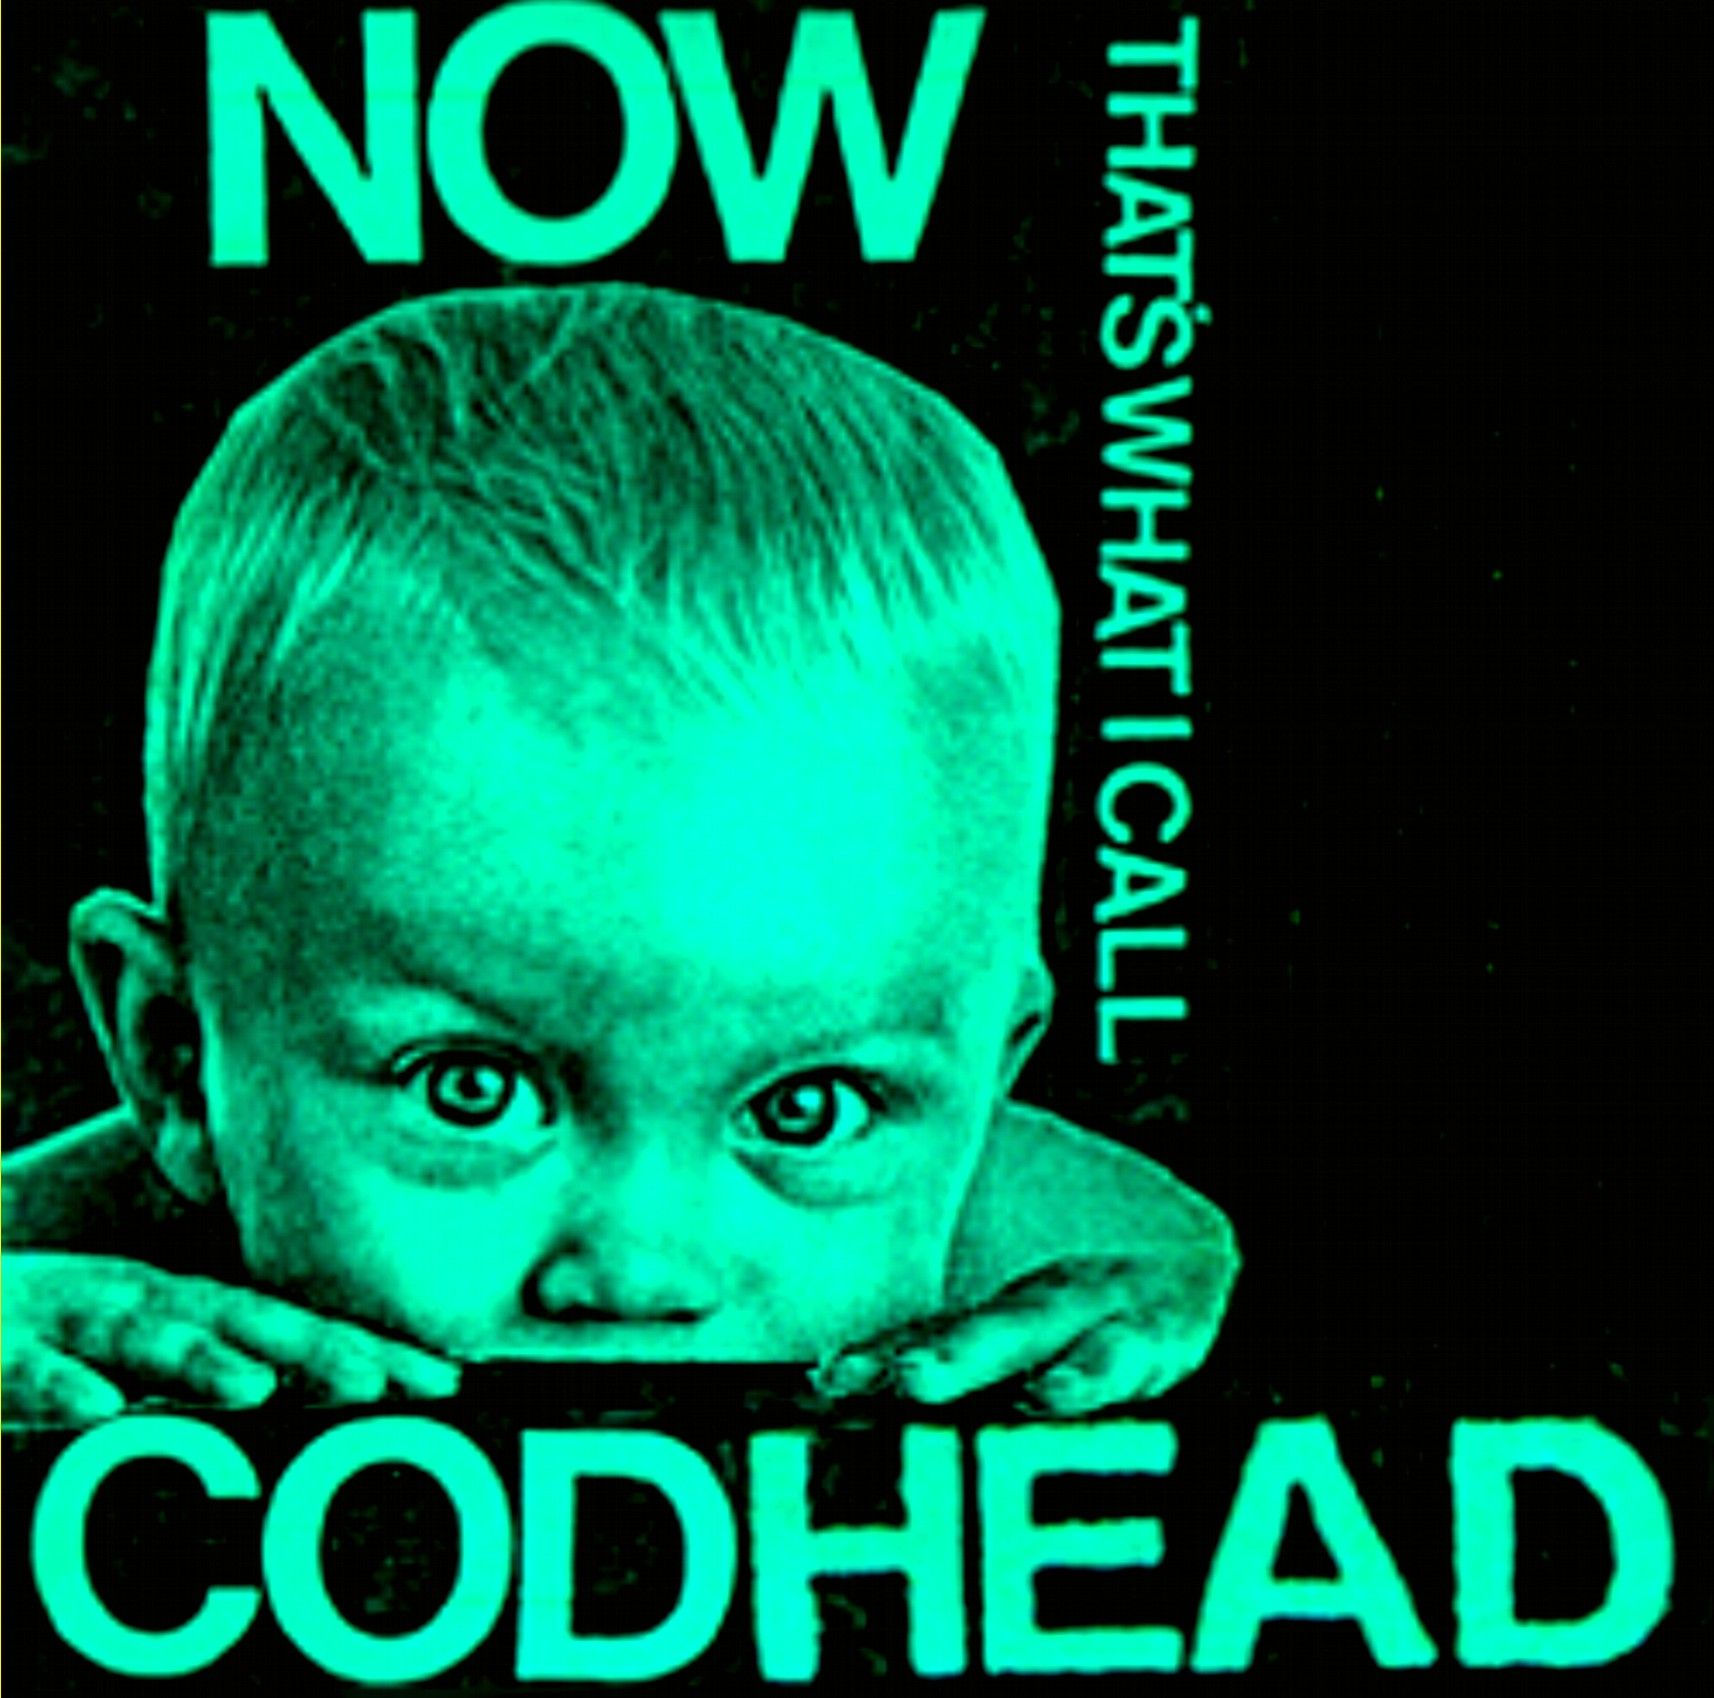 Now Thats What I Call Codhead